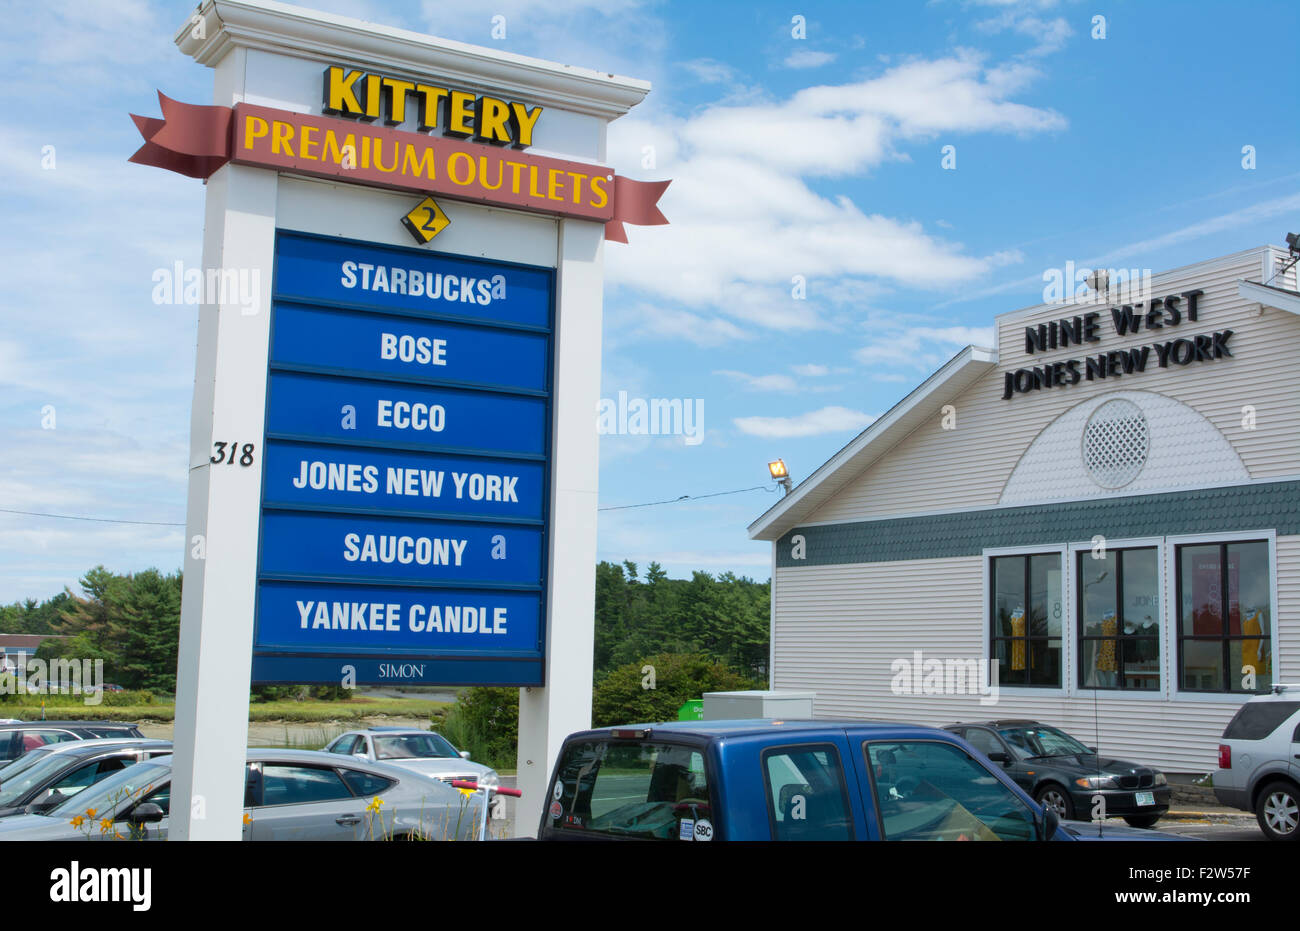 Kittery Maine shopping in outlet malls called Kittery Outlet Malls with shops and cars - Stock Image